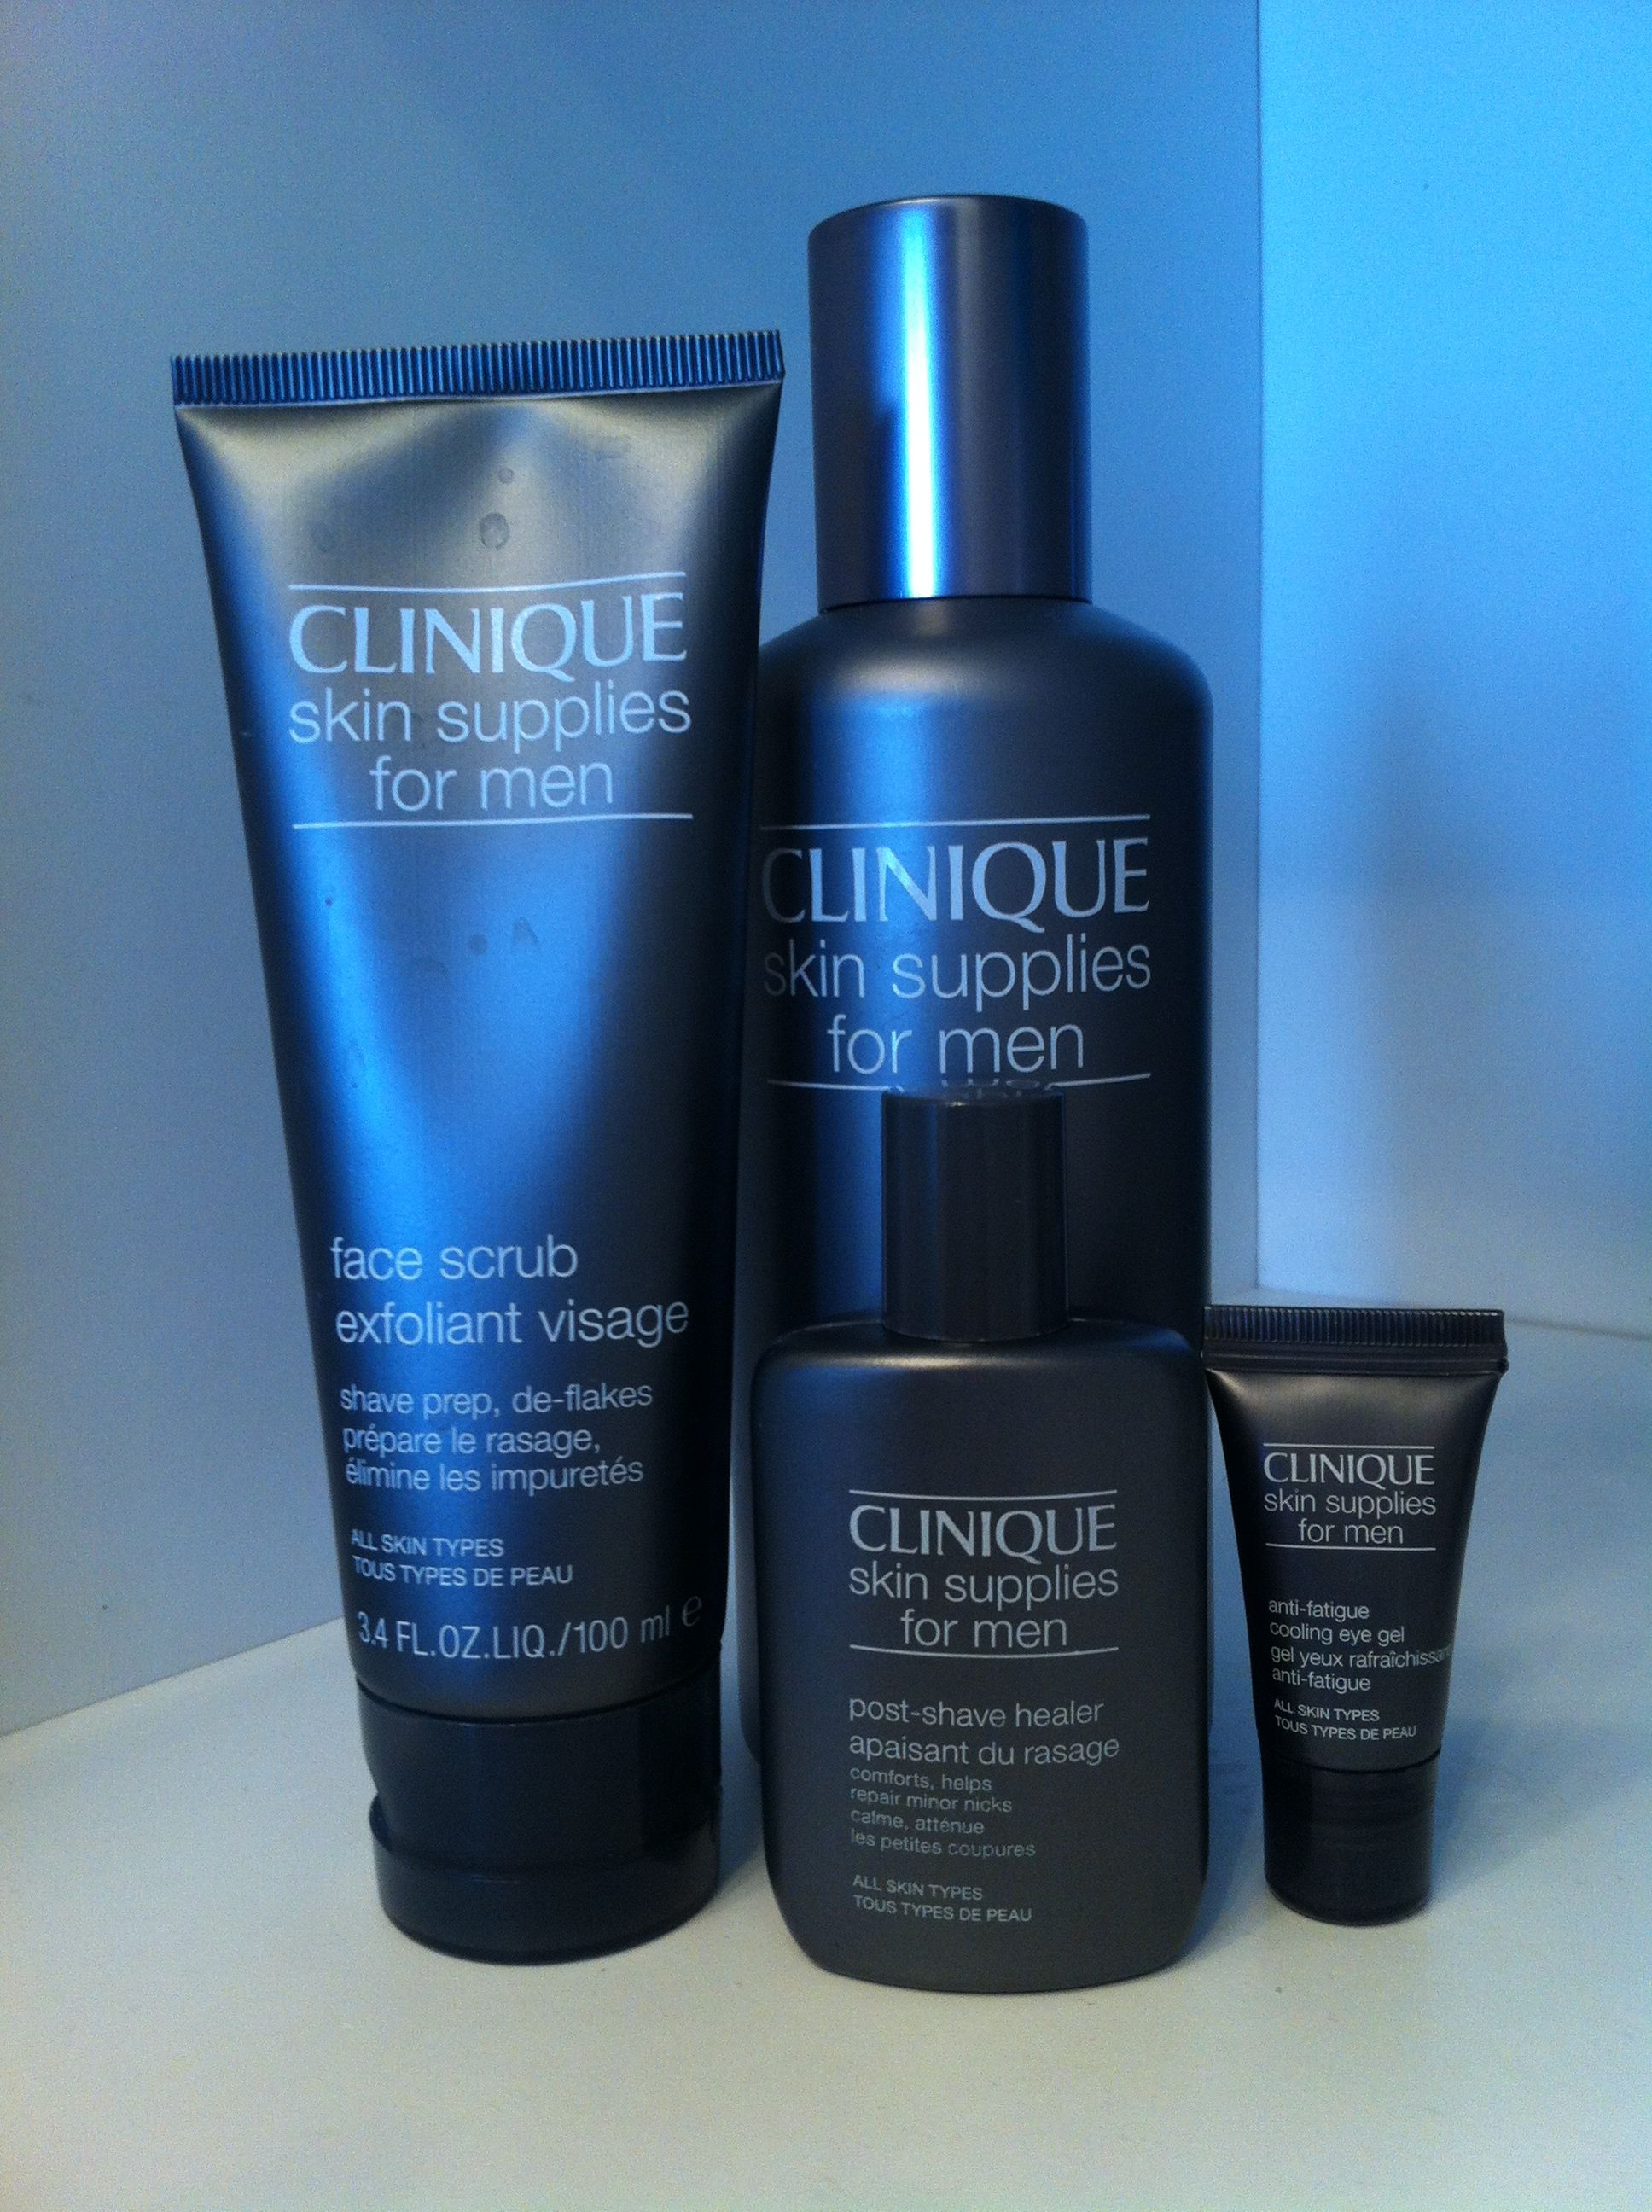 I say it's the best cosmetics brand for men clinique